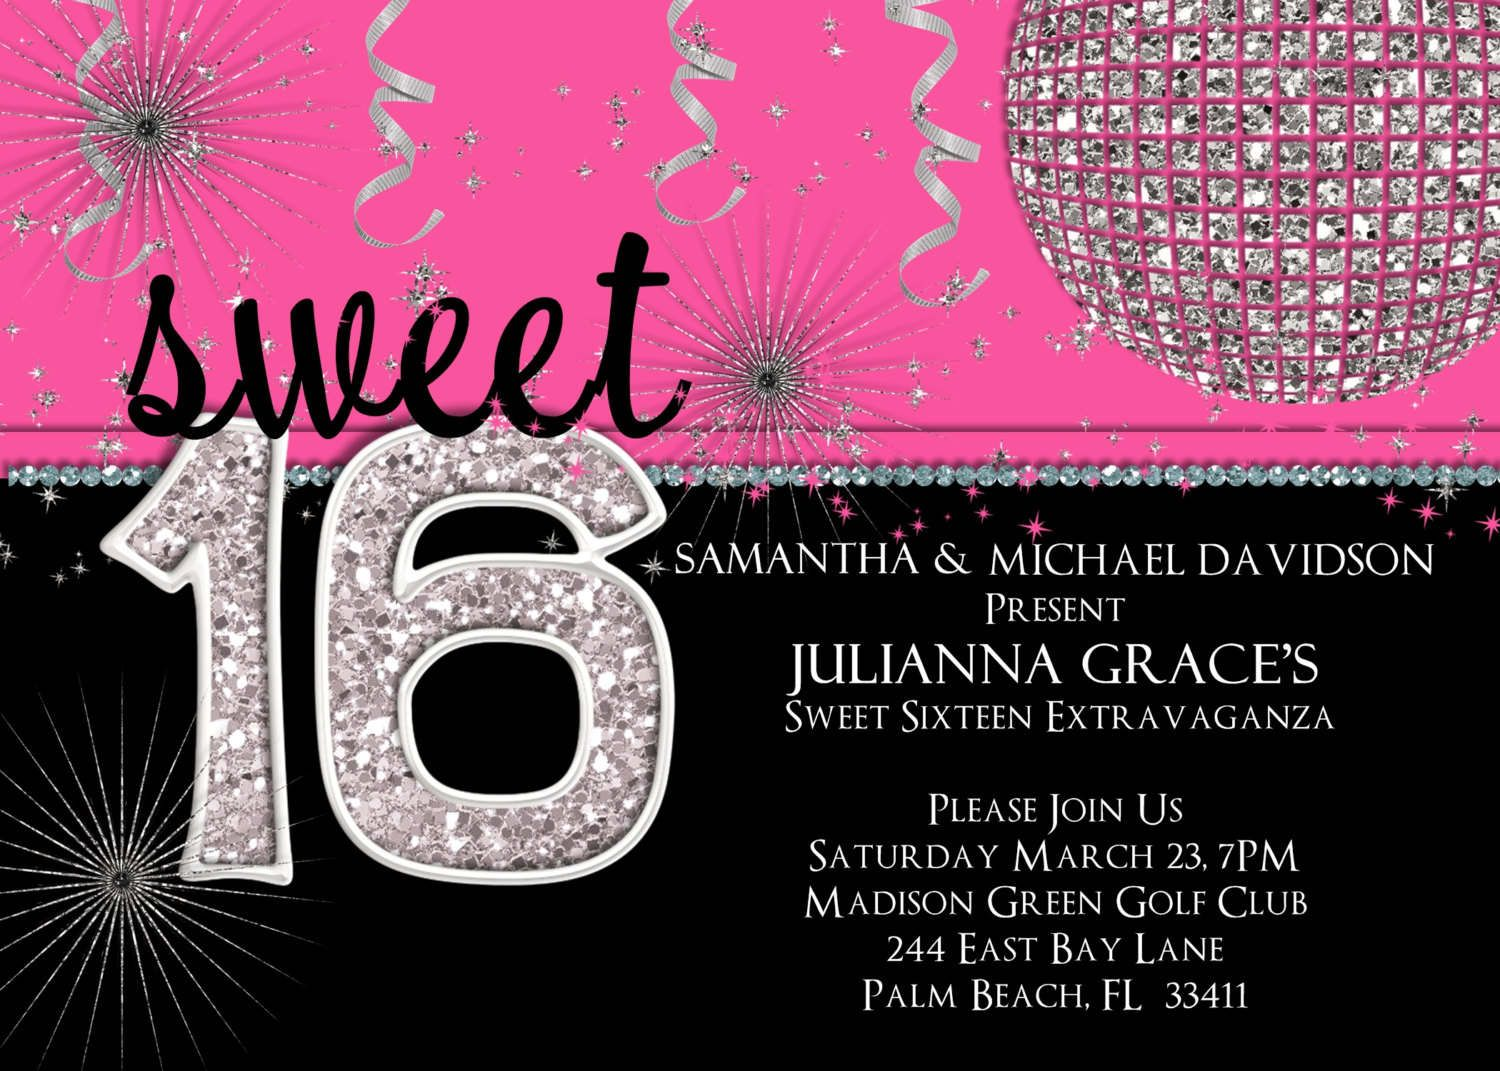 sweet sixteen invitations | Sweet 16 Invitation Templates with